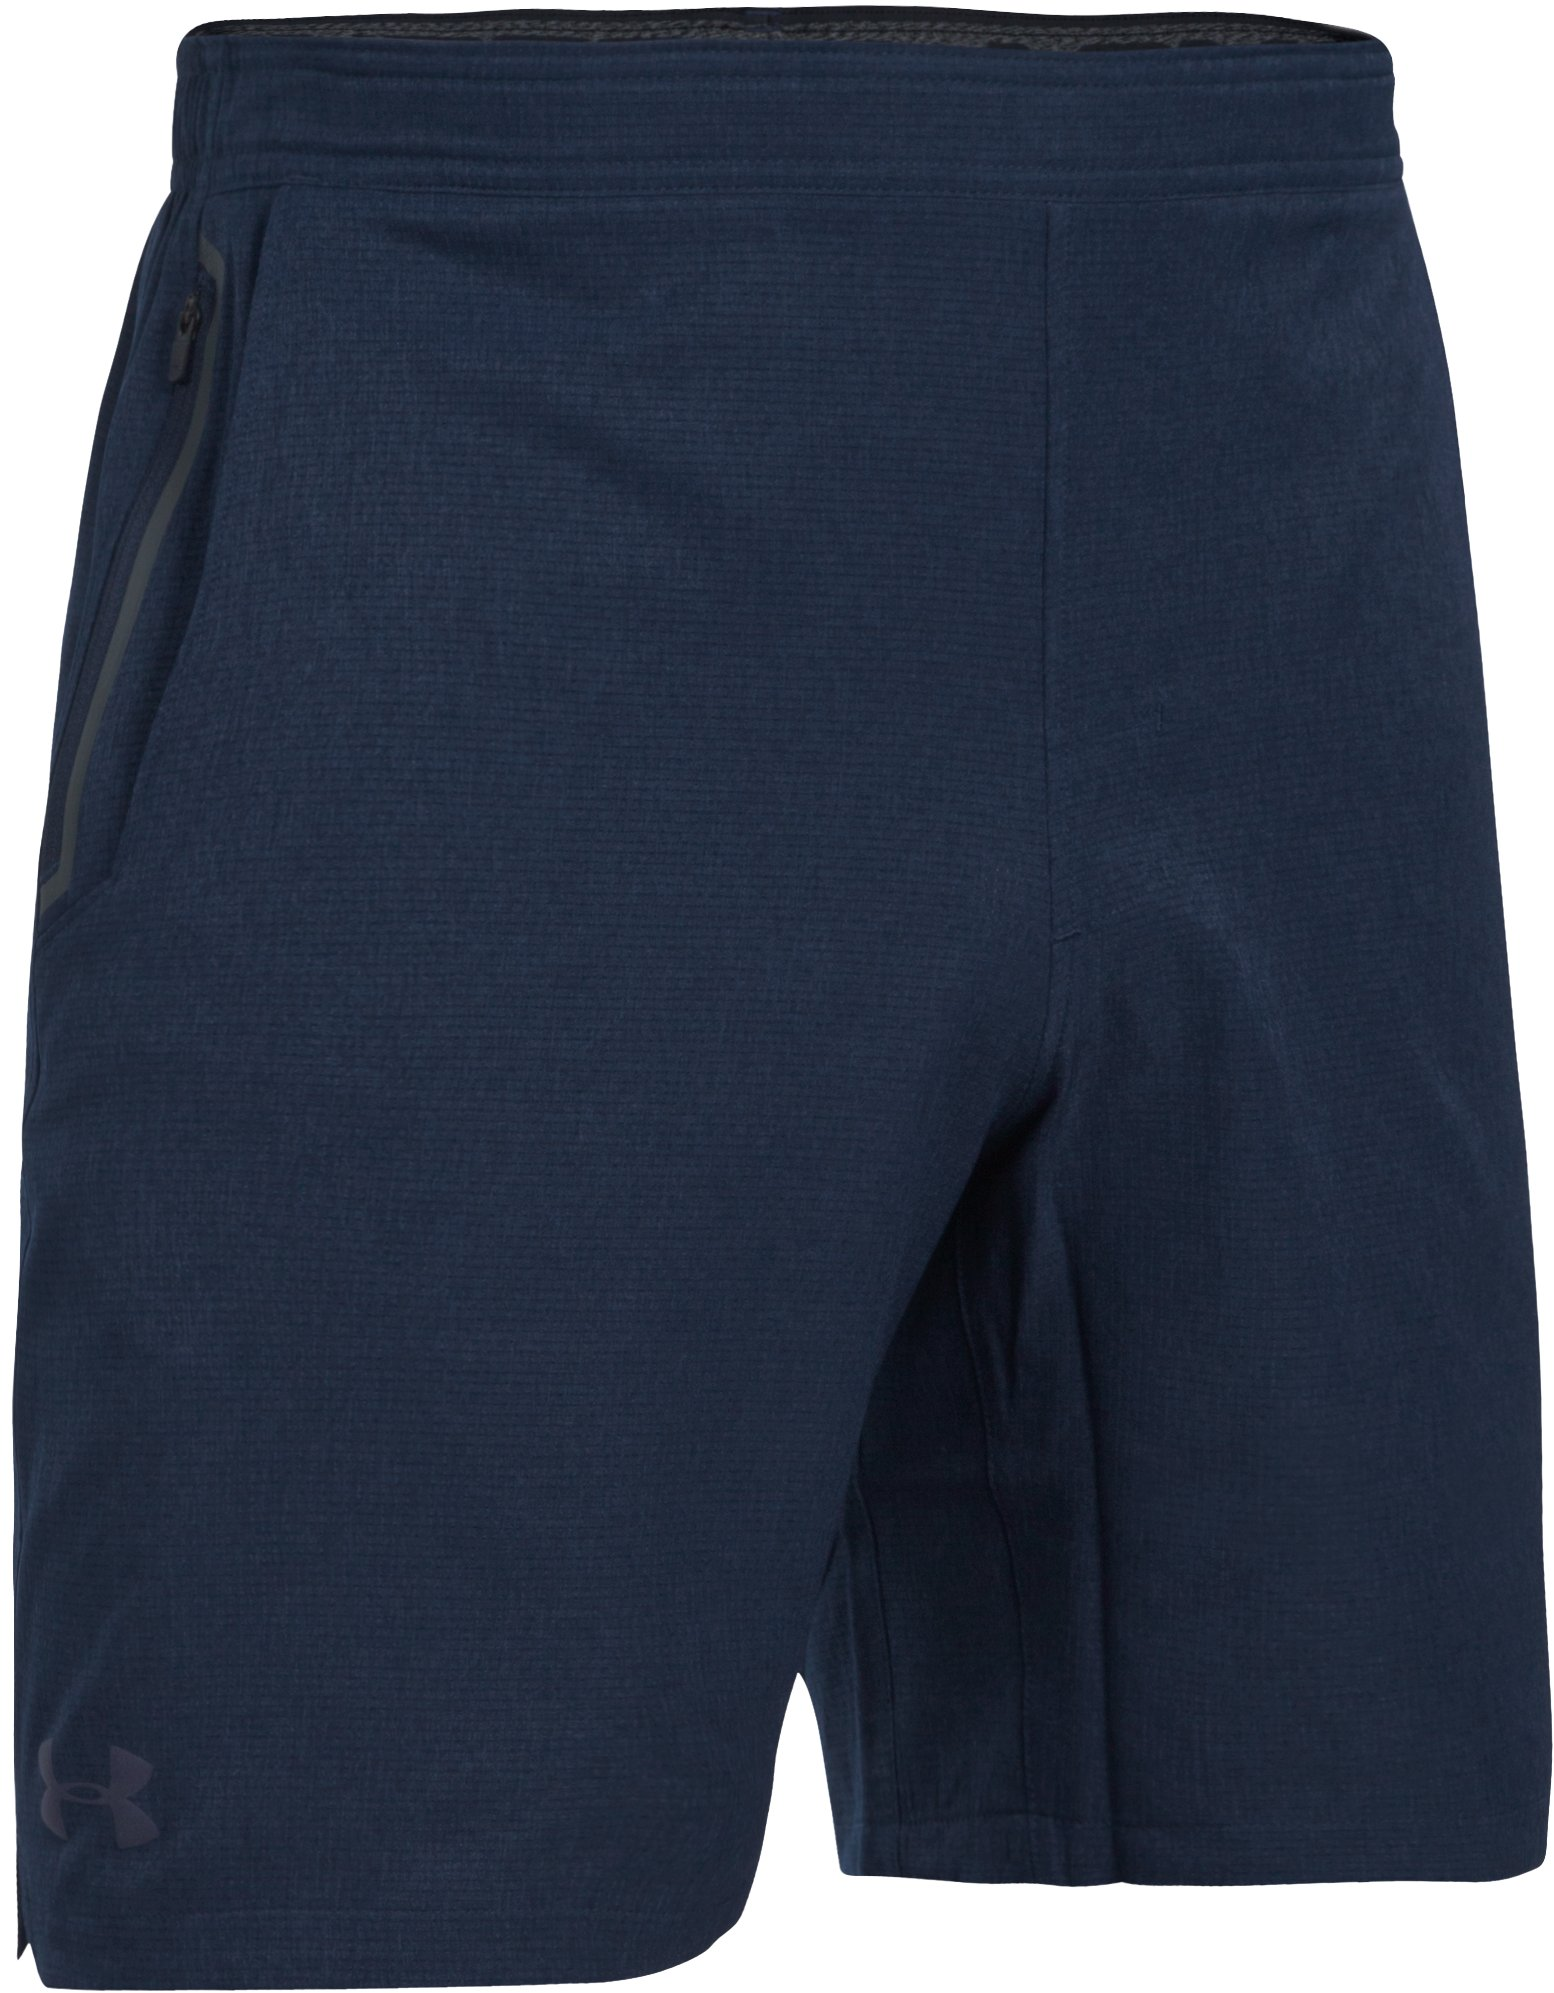 Men's UA Scope Shorts, Midnight Navy